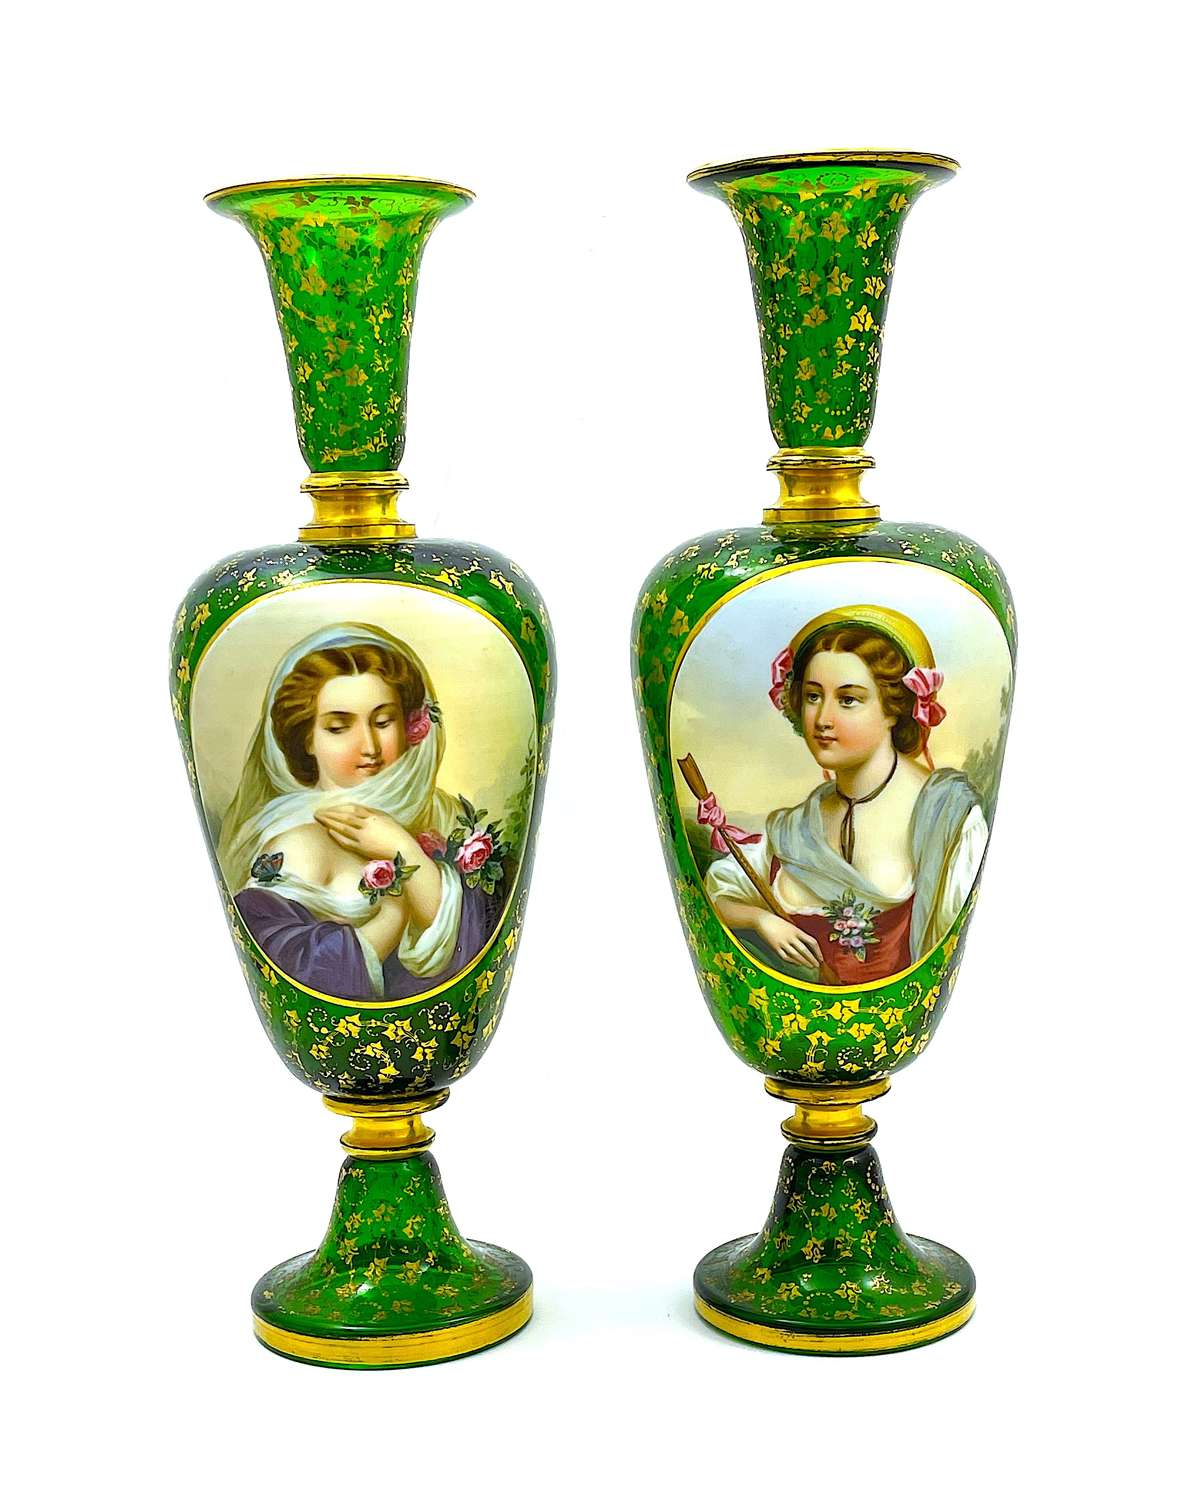 A Large Pair of High Quality AntiqueOverlay Portrait Vases